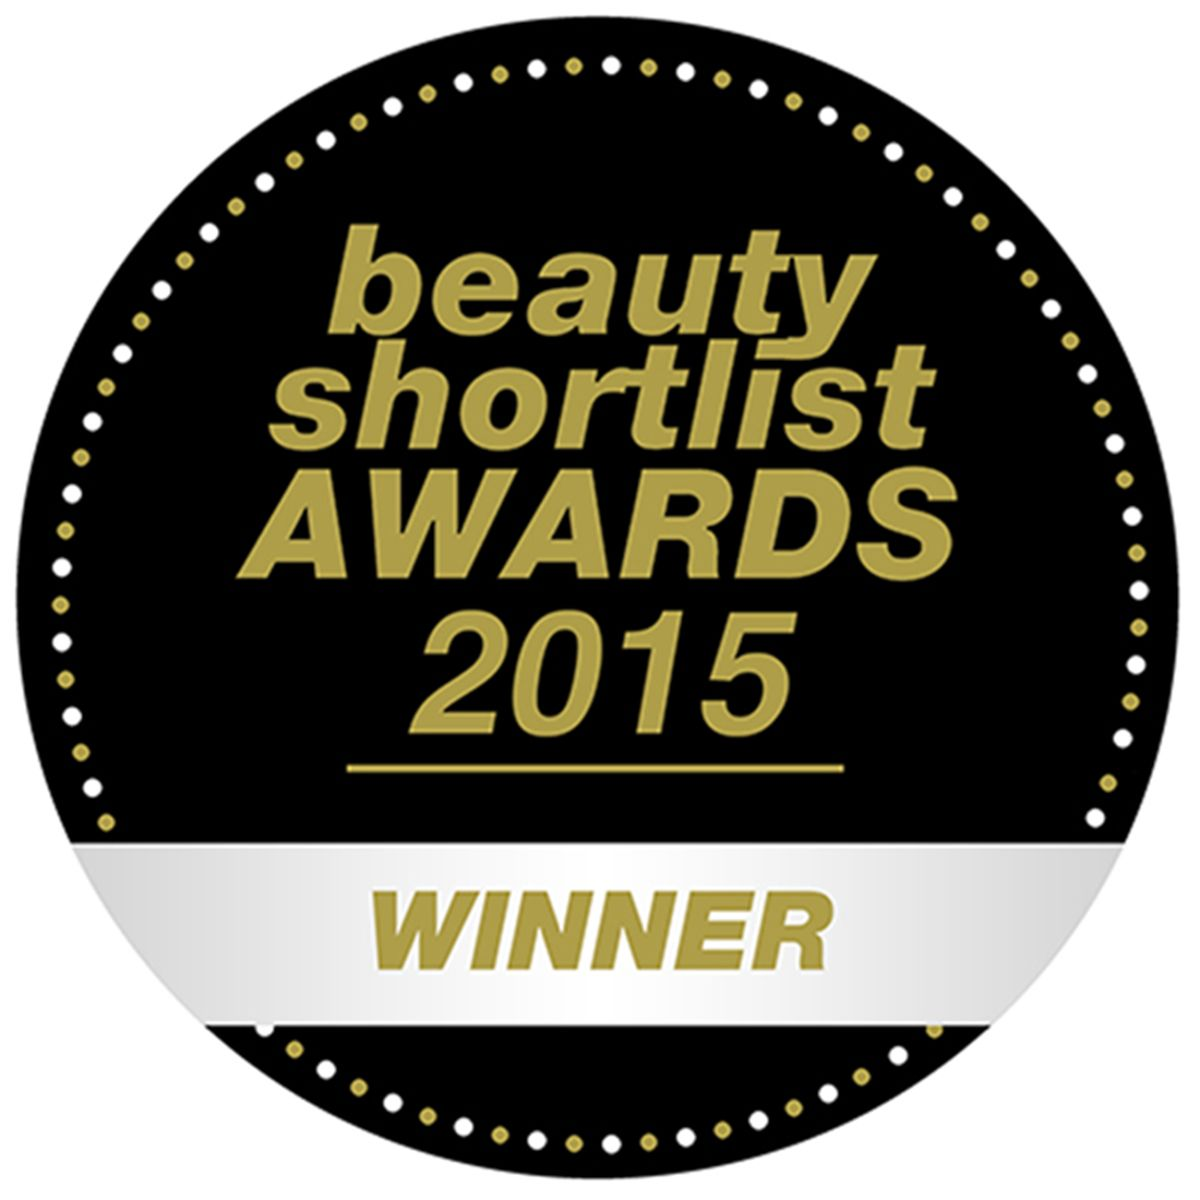 Beauty Shortlist Awards 2015 Winner